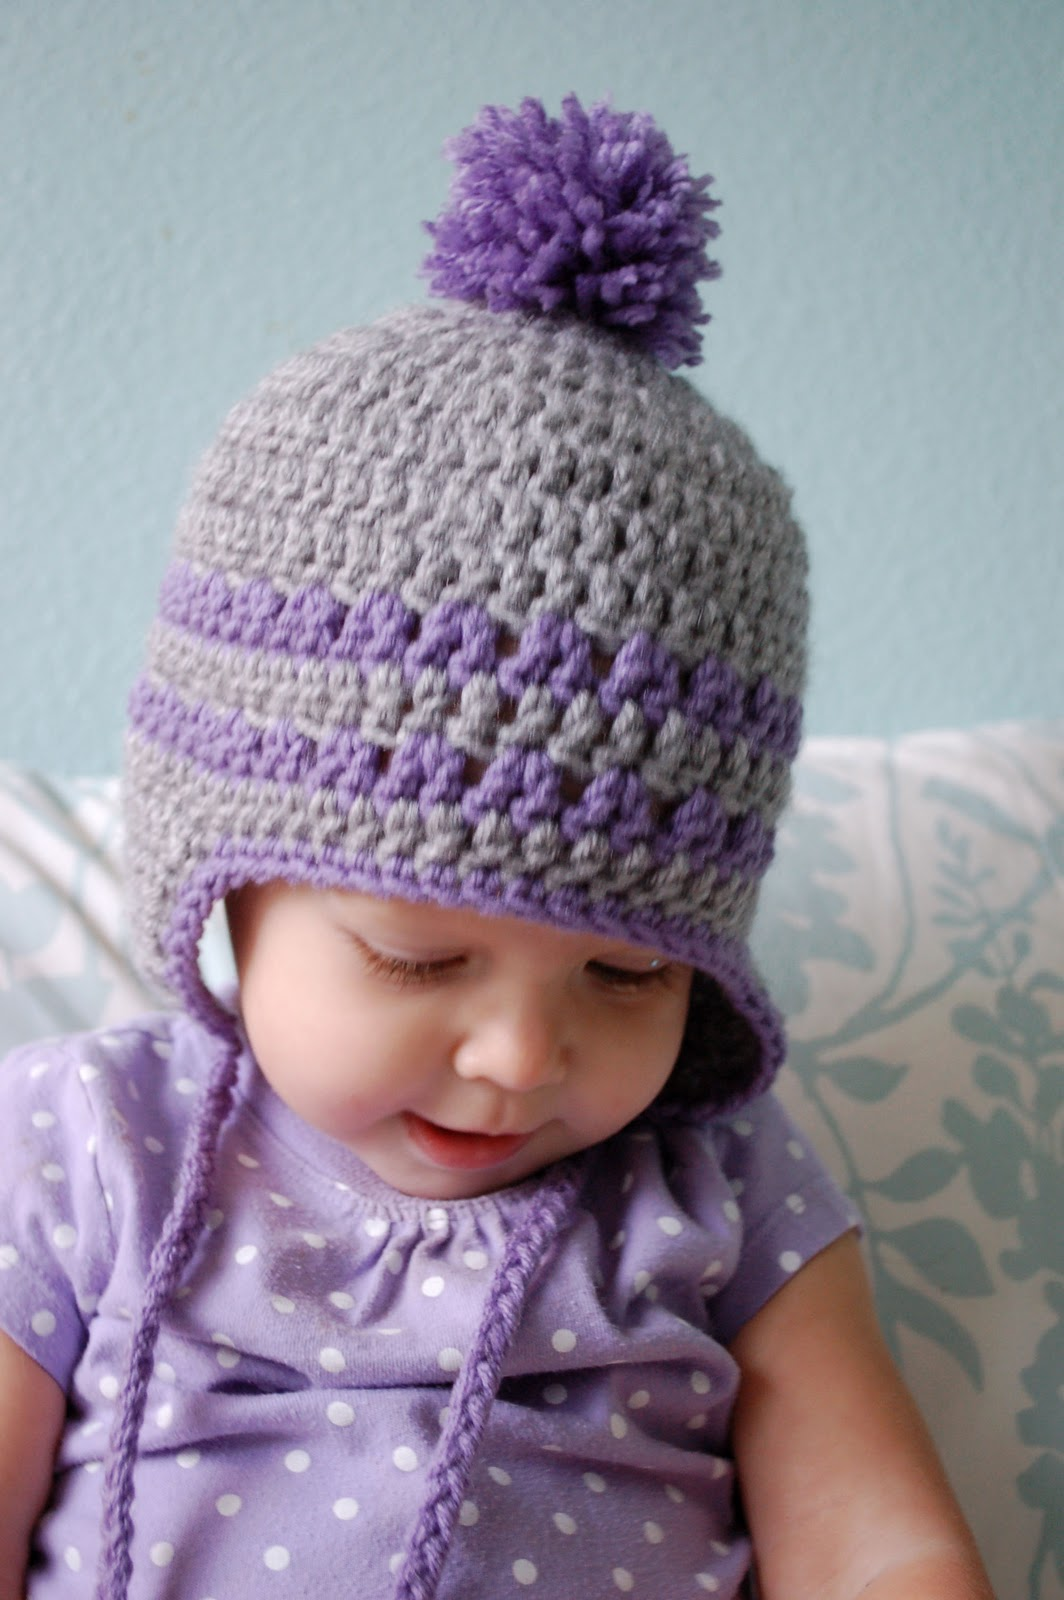 Crochet Hat Pattern For 8 Month Old : Alli Crafts: Free Pattern: Earflap Hat - 9-12 Months